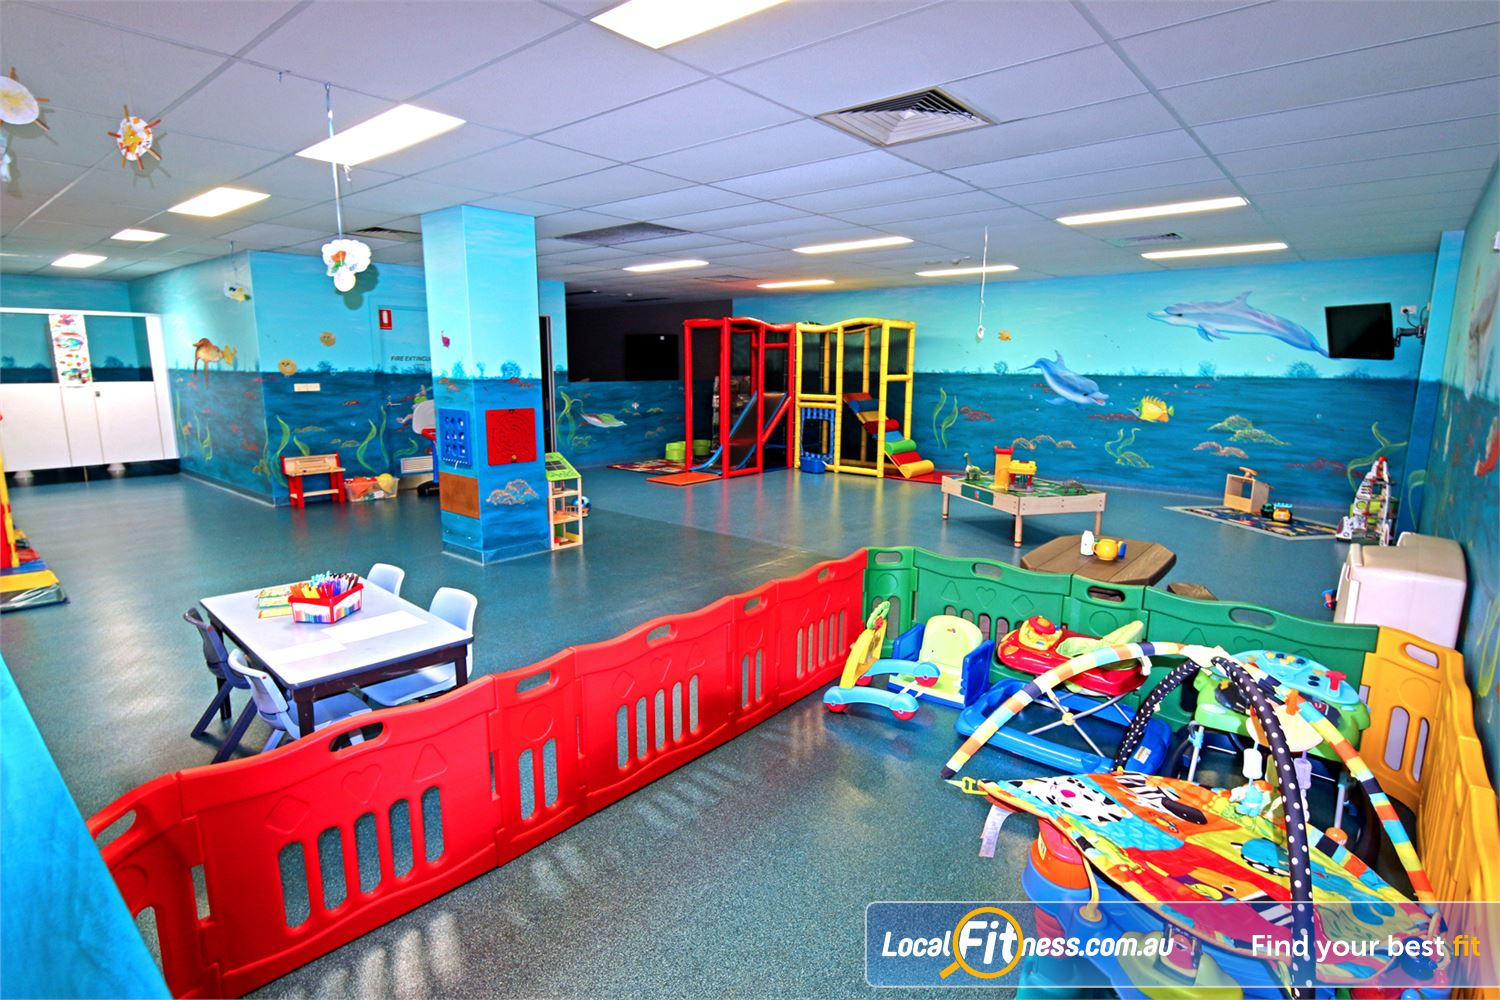 Fitness First Carindale On-site Carindale creche services are all about helping parents.